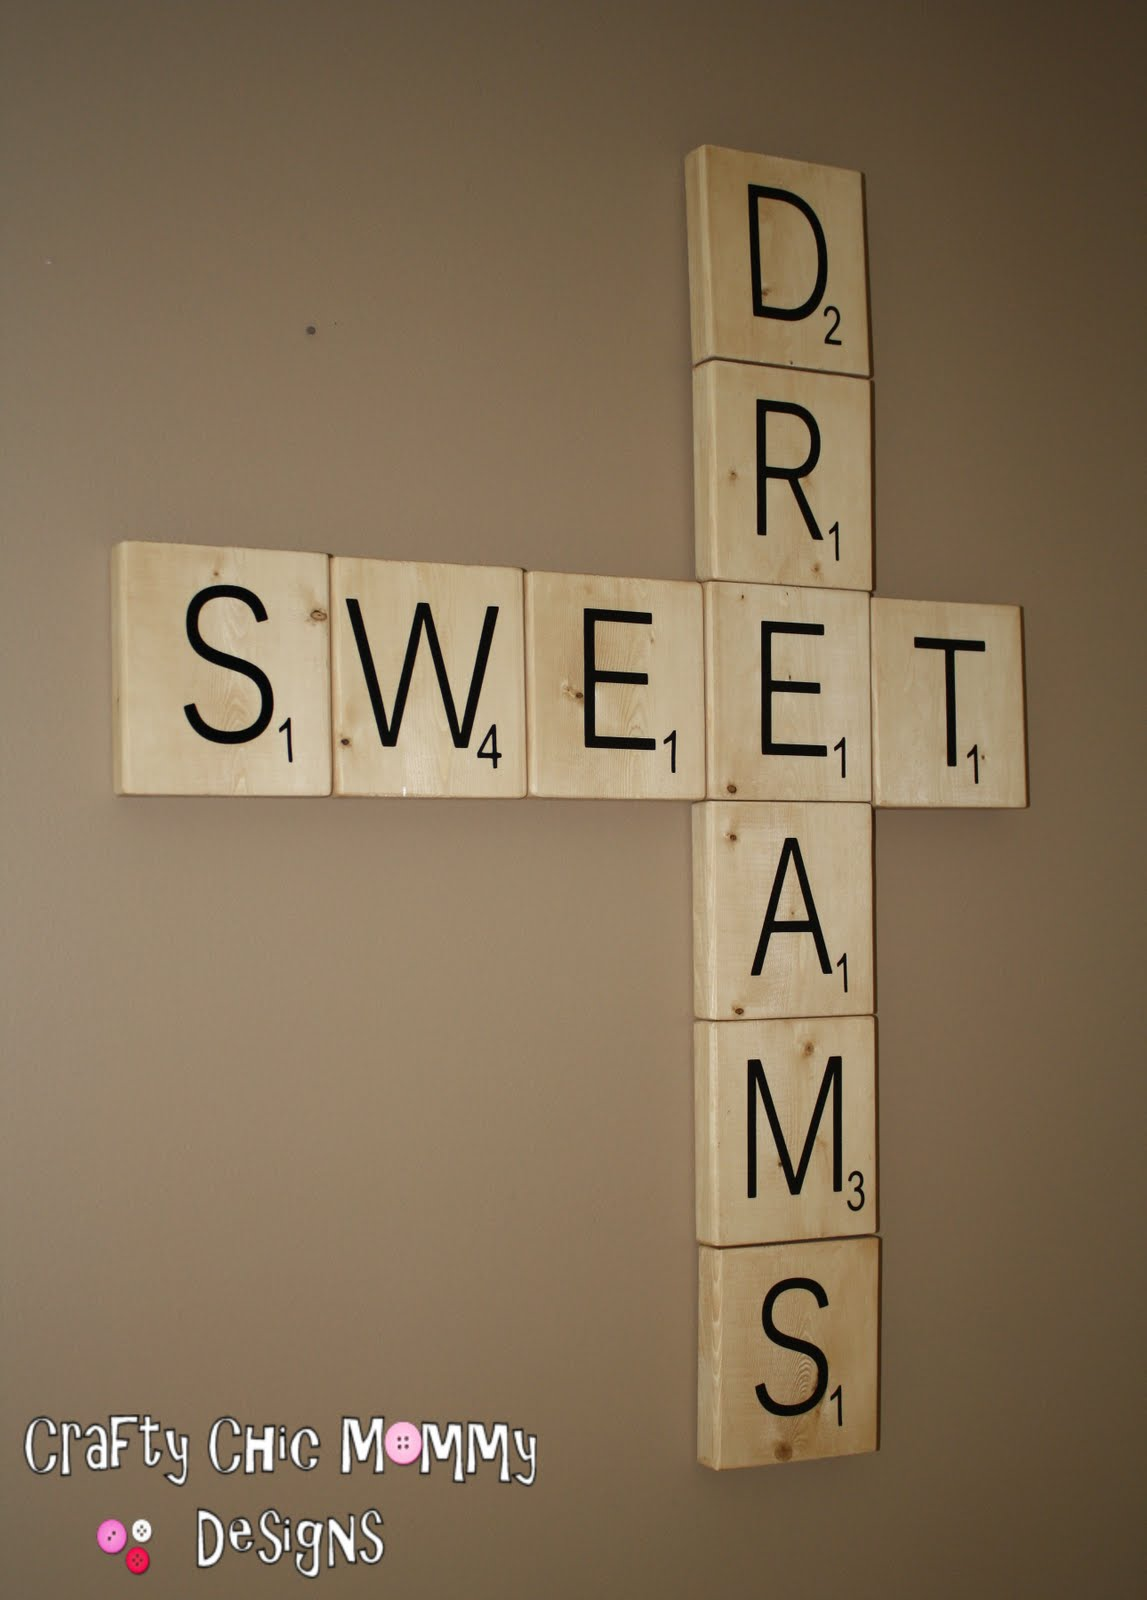 Crafty chic mommy giant scrabble tiles tutorial for Large scrabble letters wall decor